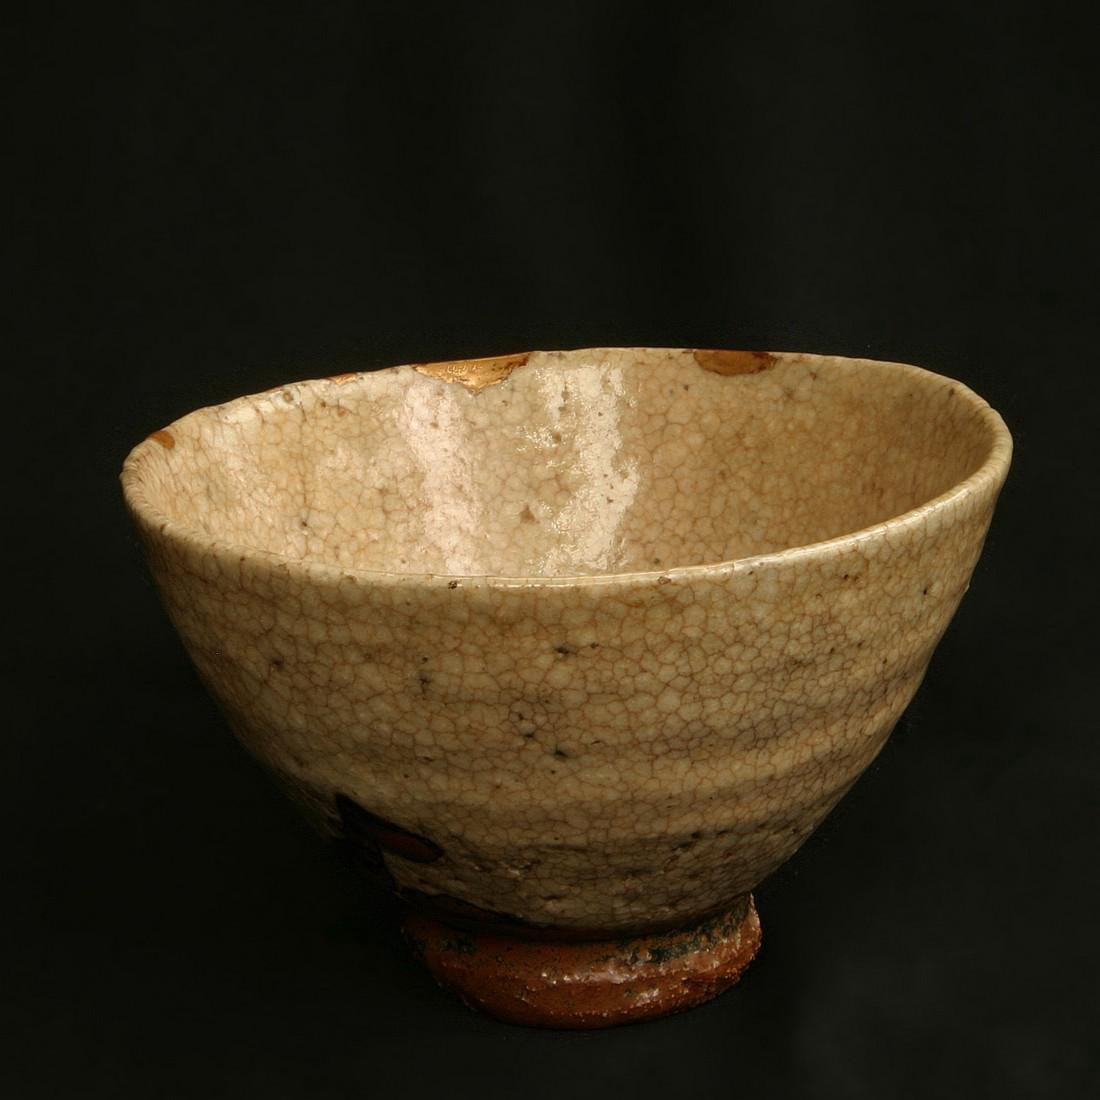 Antique Japanese Edo Glazed Ceramic Tea Bowl, 18th C - 3